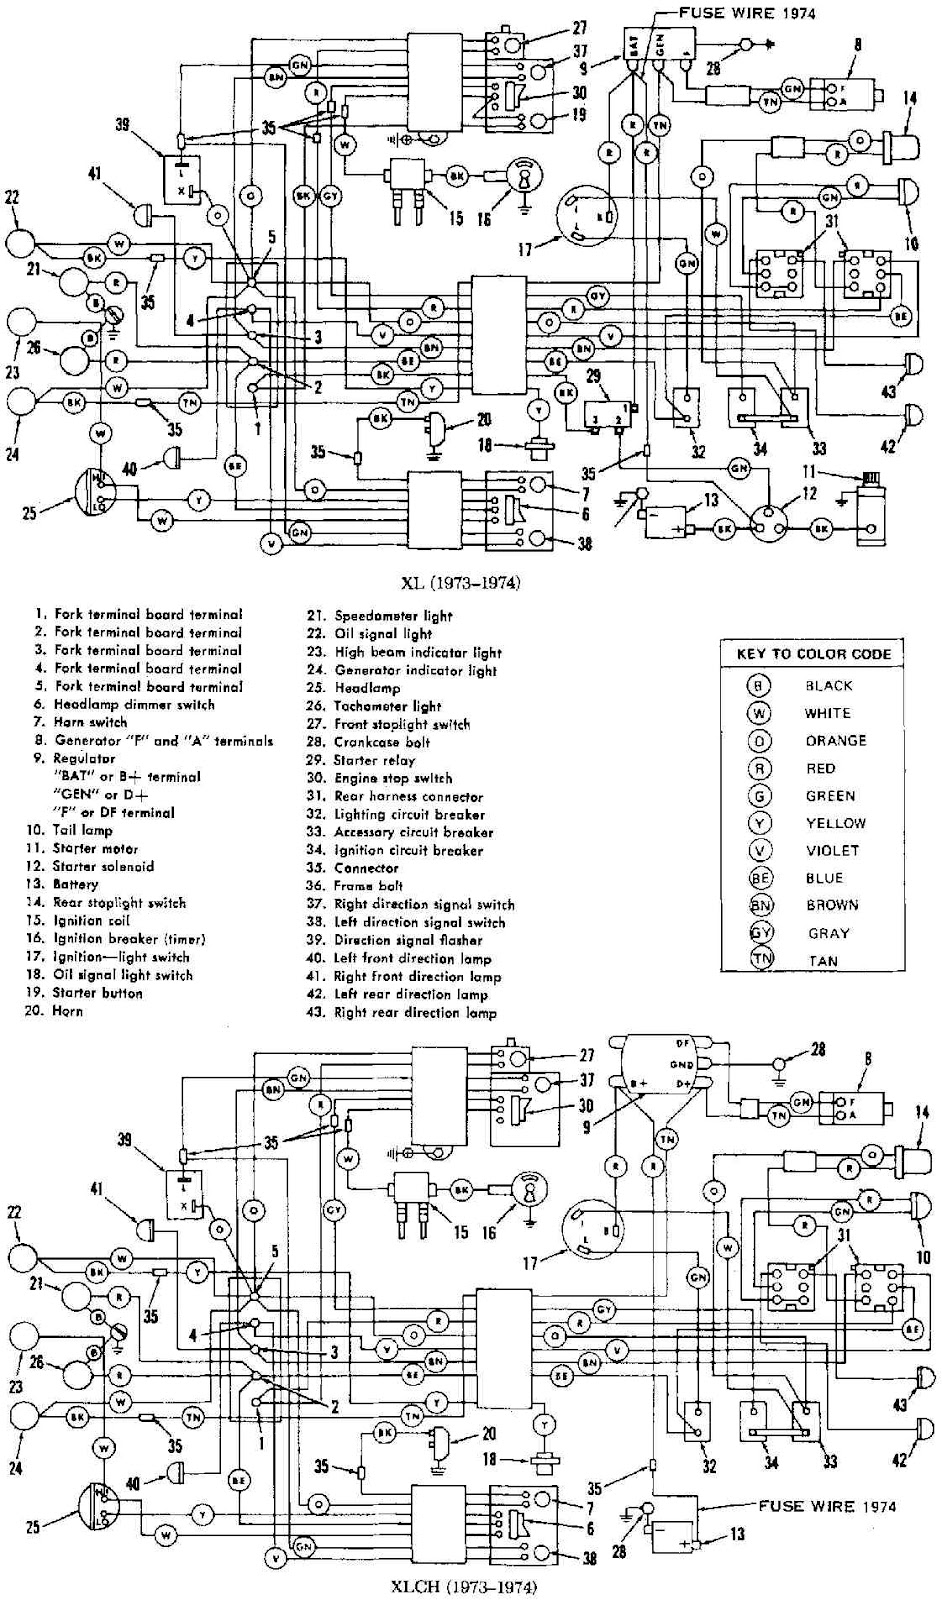 harley davidson xl-xlch 1973-1974 motorcycle electrical ... 2003 harley davidson wiring diagrams harley davidson electrical diagrams